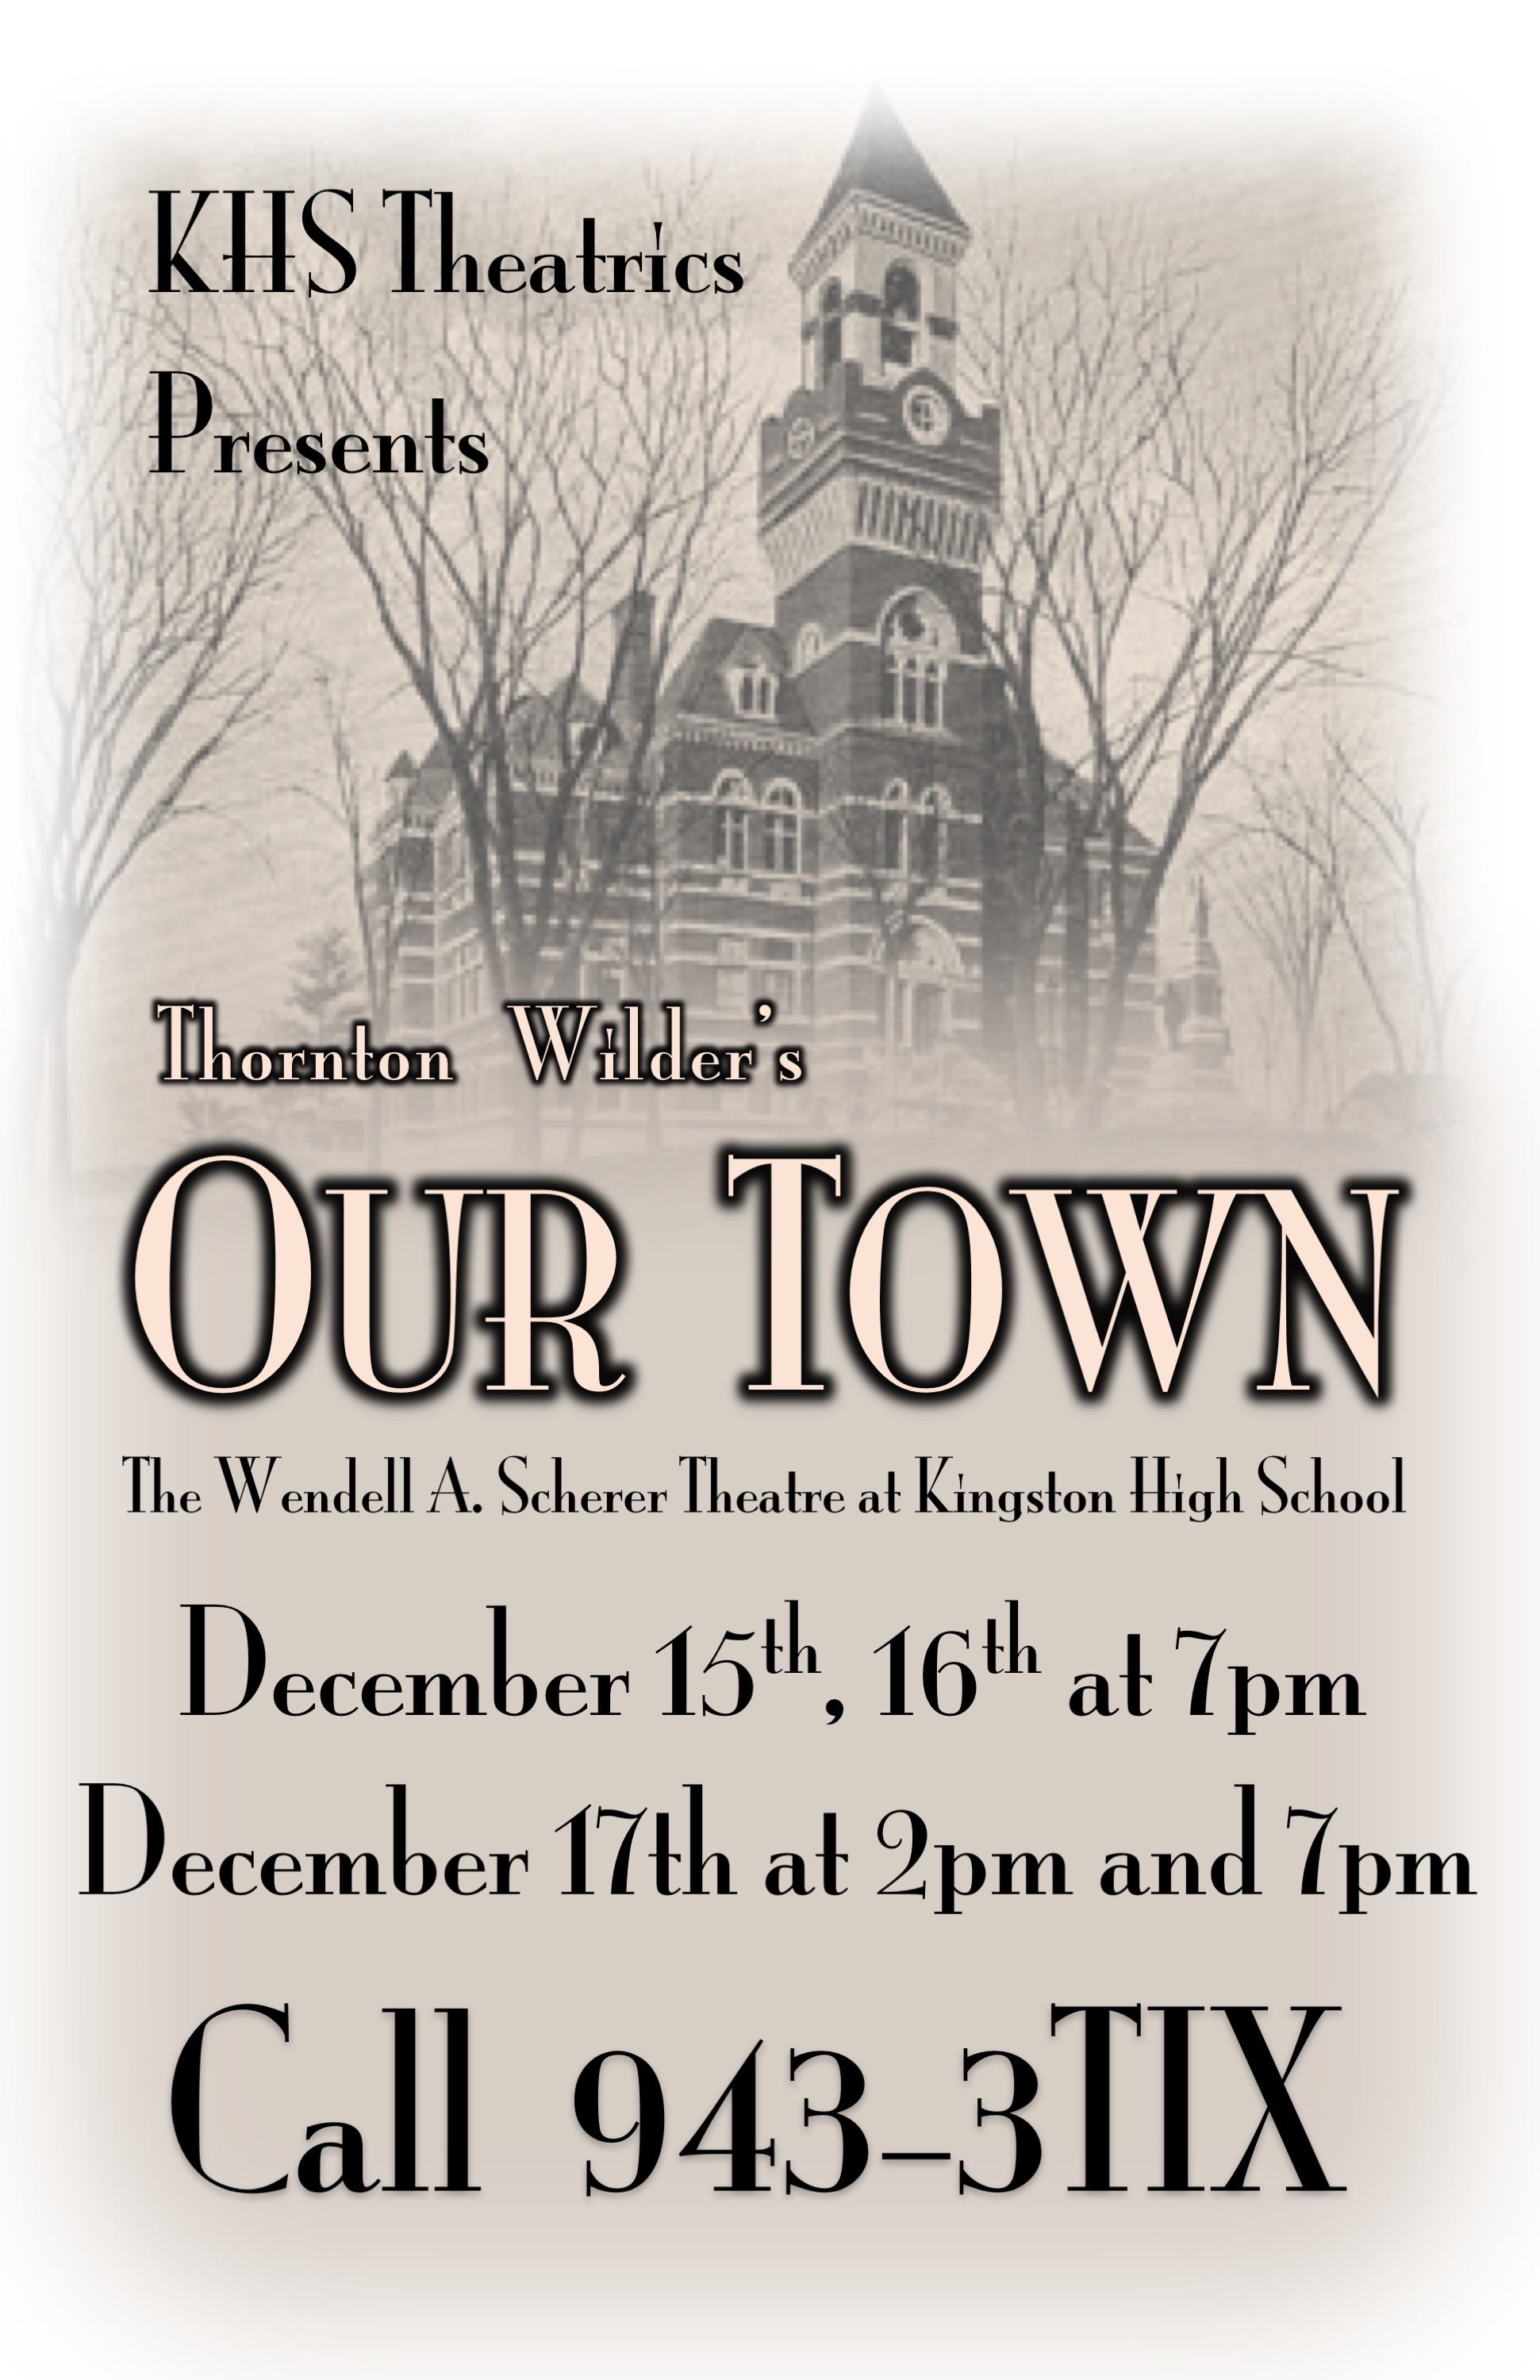 KHS Theatrics: Our Town